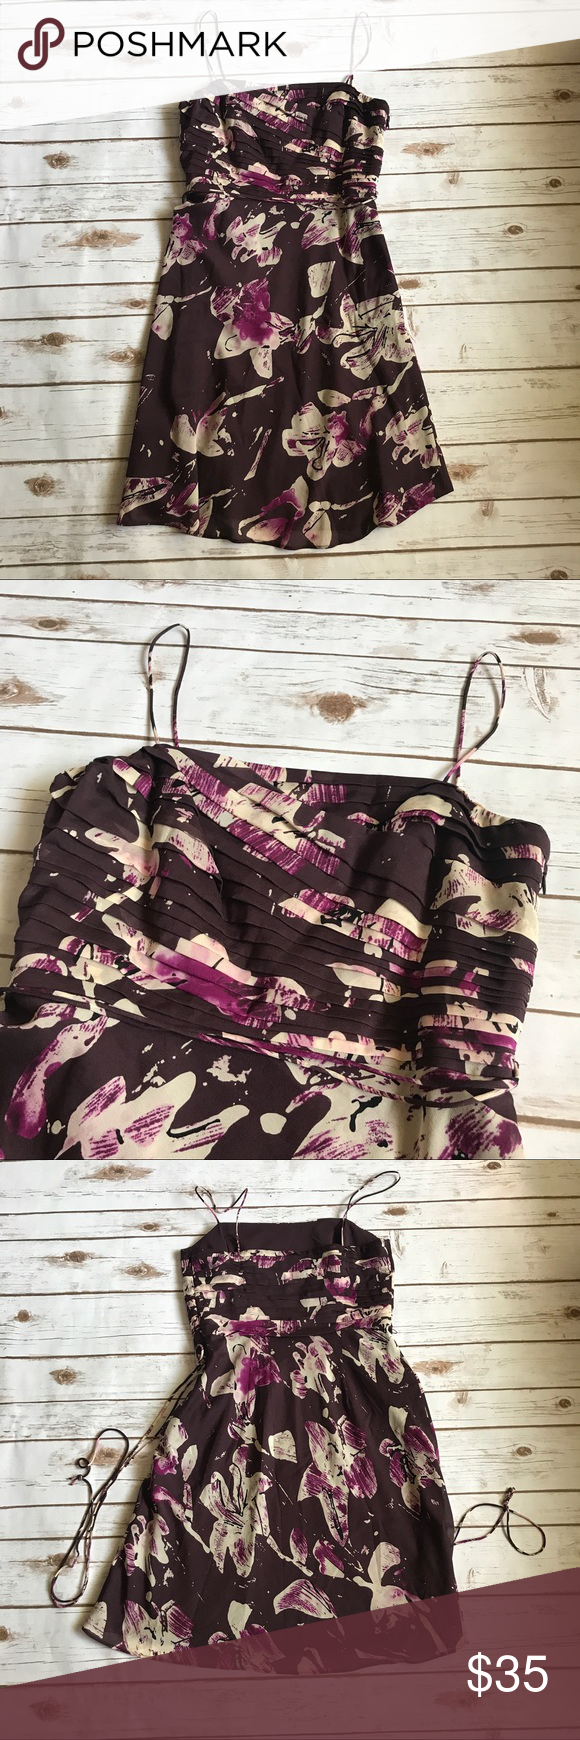 ANN TAYLOR Floral Dress Ann Taylor dress in purple floral print. Bodice is layered tiers. Size 4. There is a belt attached to this with in tact belt loops. Can be wrapped around a variety of ways and tied in a bow or hung loose. Ann Taylor Dresses